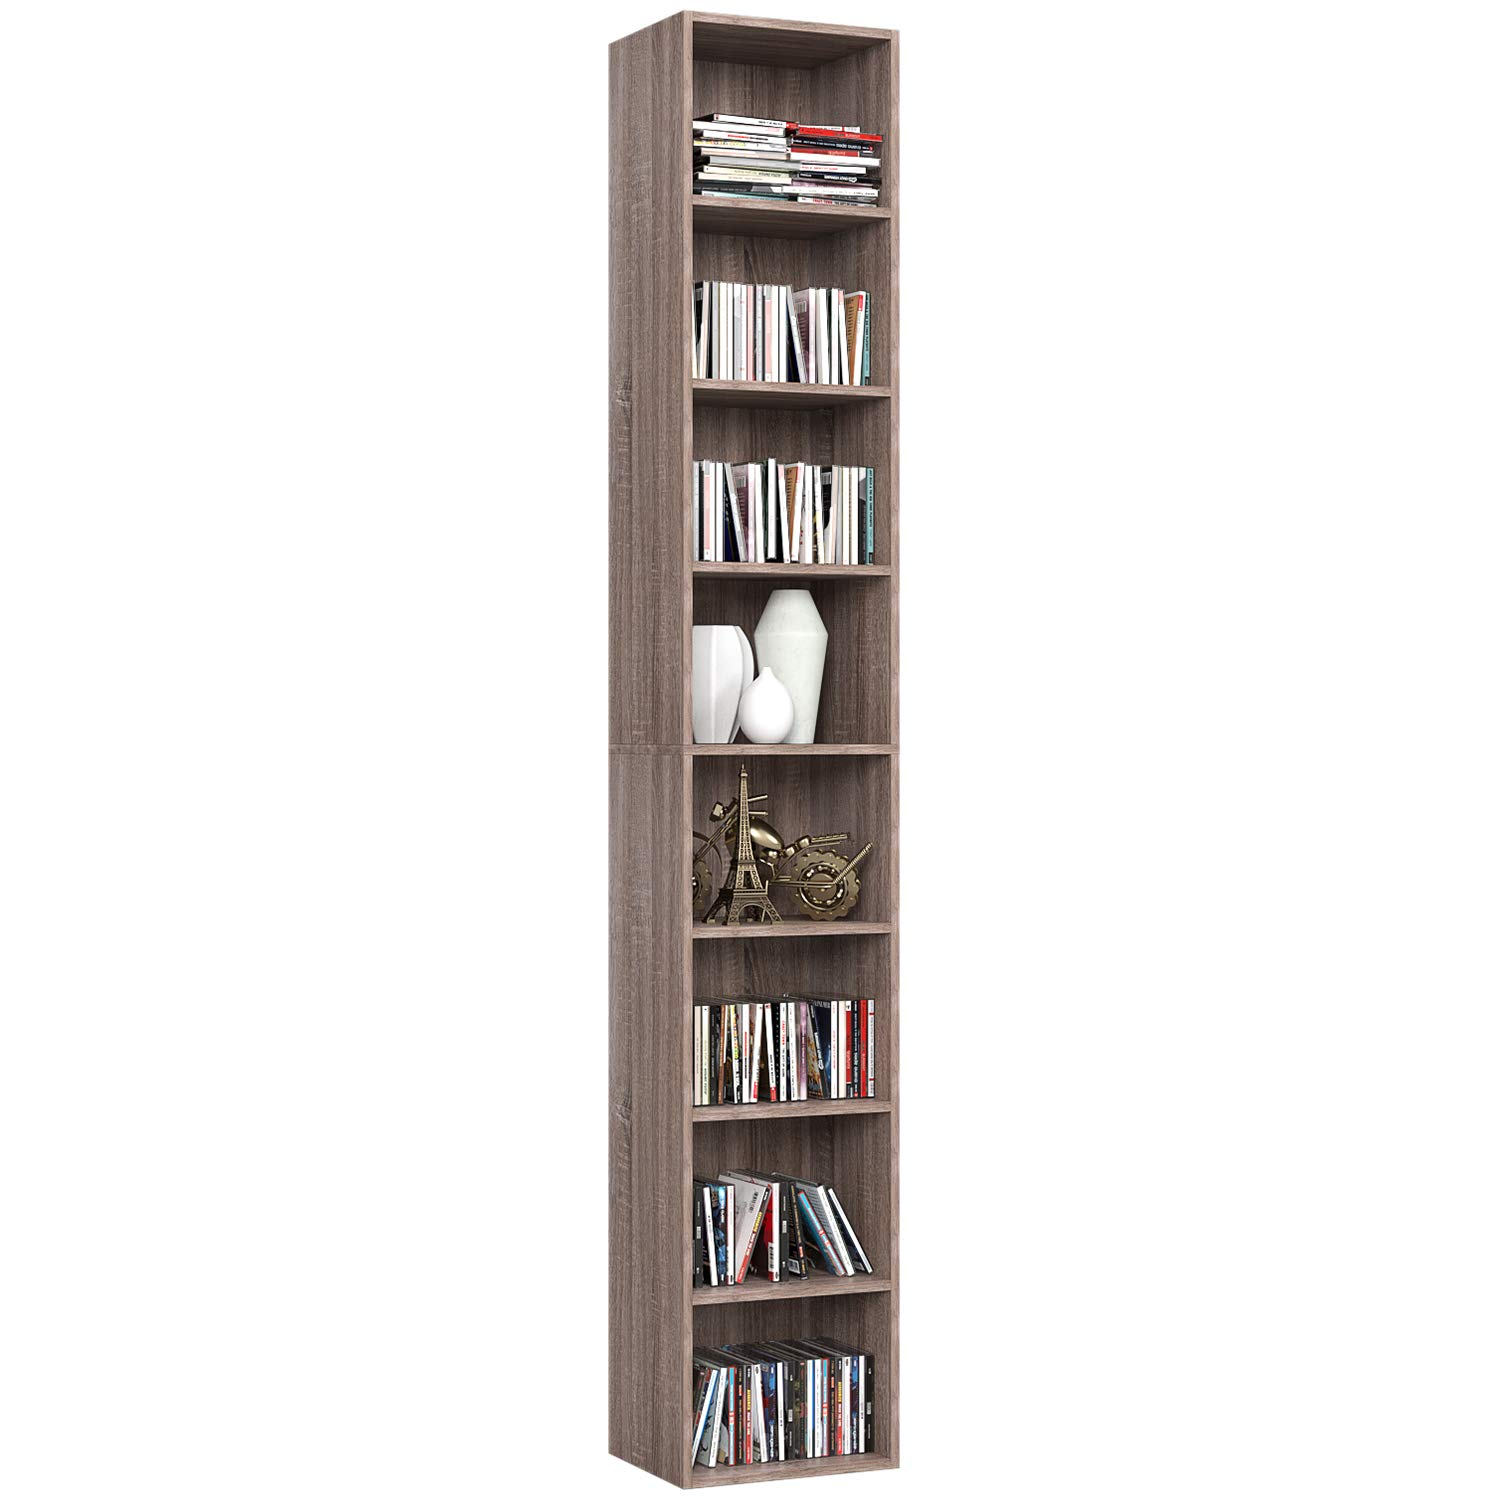 Cool Homfa Cd Dvd Storage Tower Rack 8 Tier Wooden Media Storage Organizer Cabinet Unit 71 Inches Height Bookshelf Display Bookcase With Adjustable Home Remodeling Inspirations Basidirectenergyitoicom